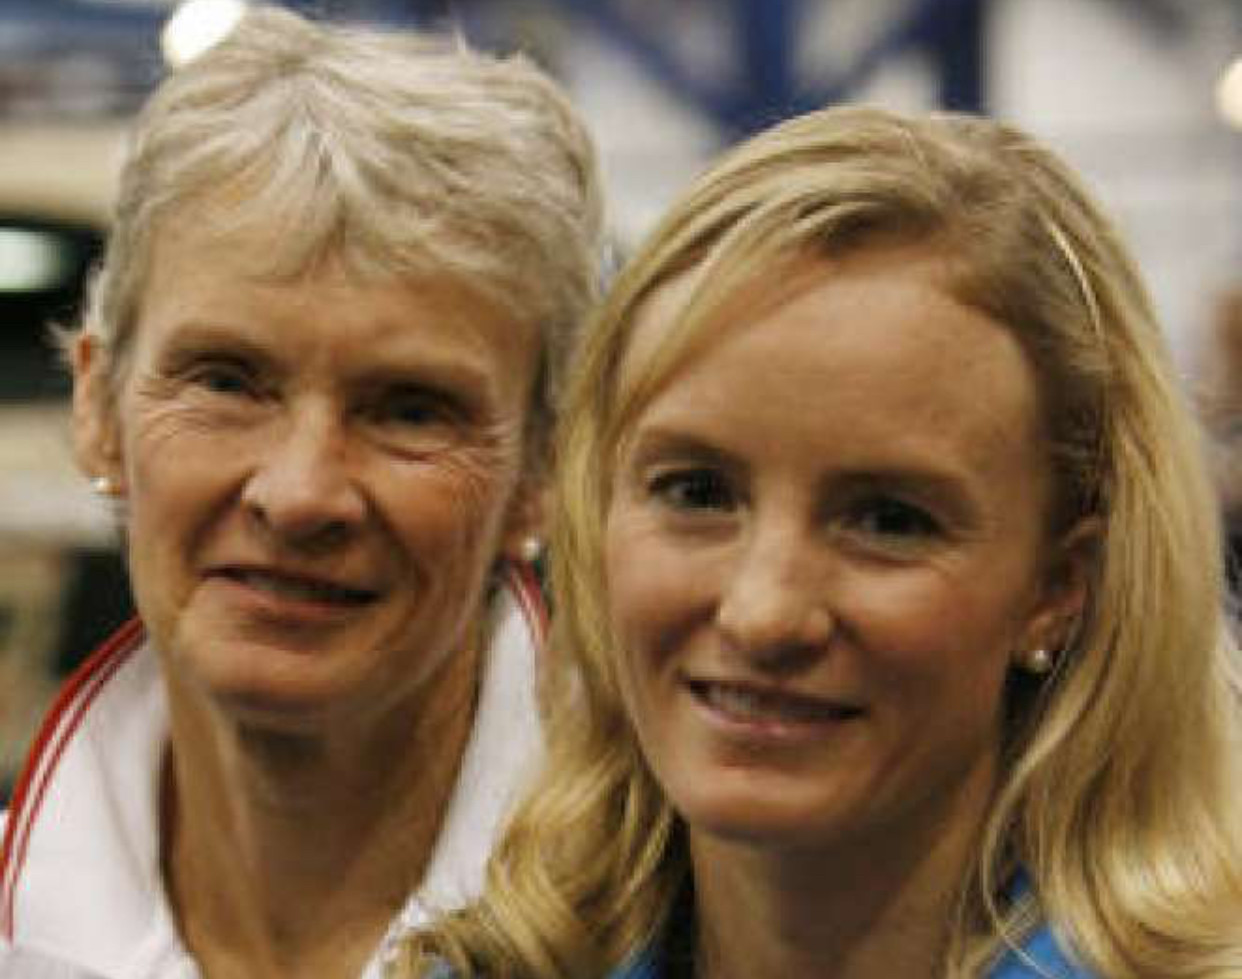 Shalane Flanagan's Mother once held the World Record in the Marathon